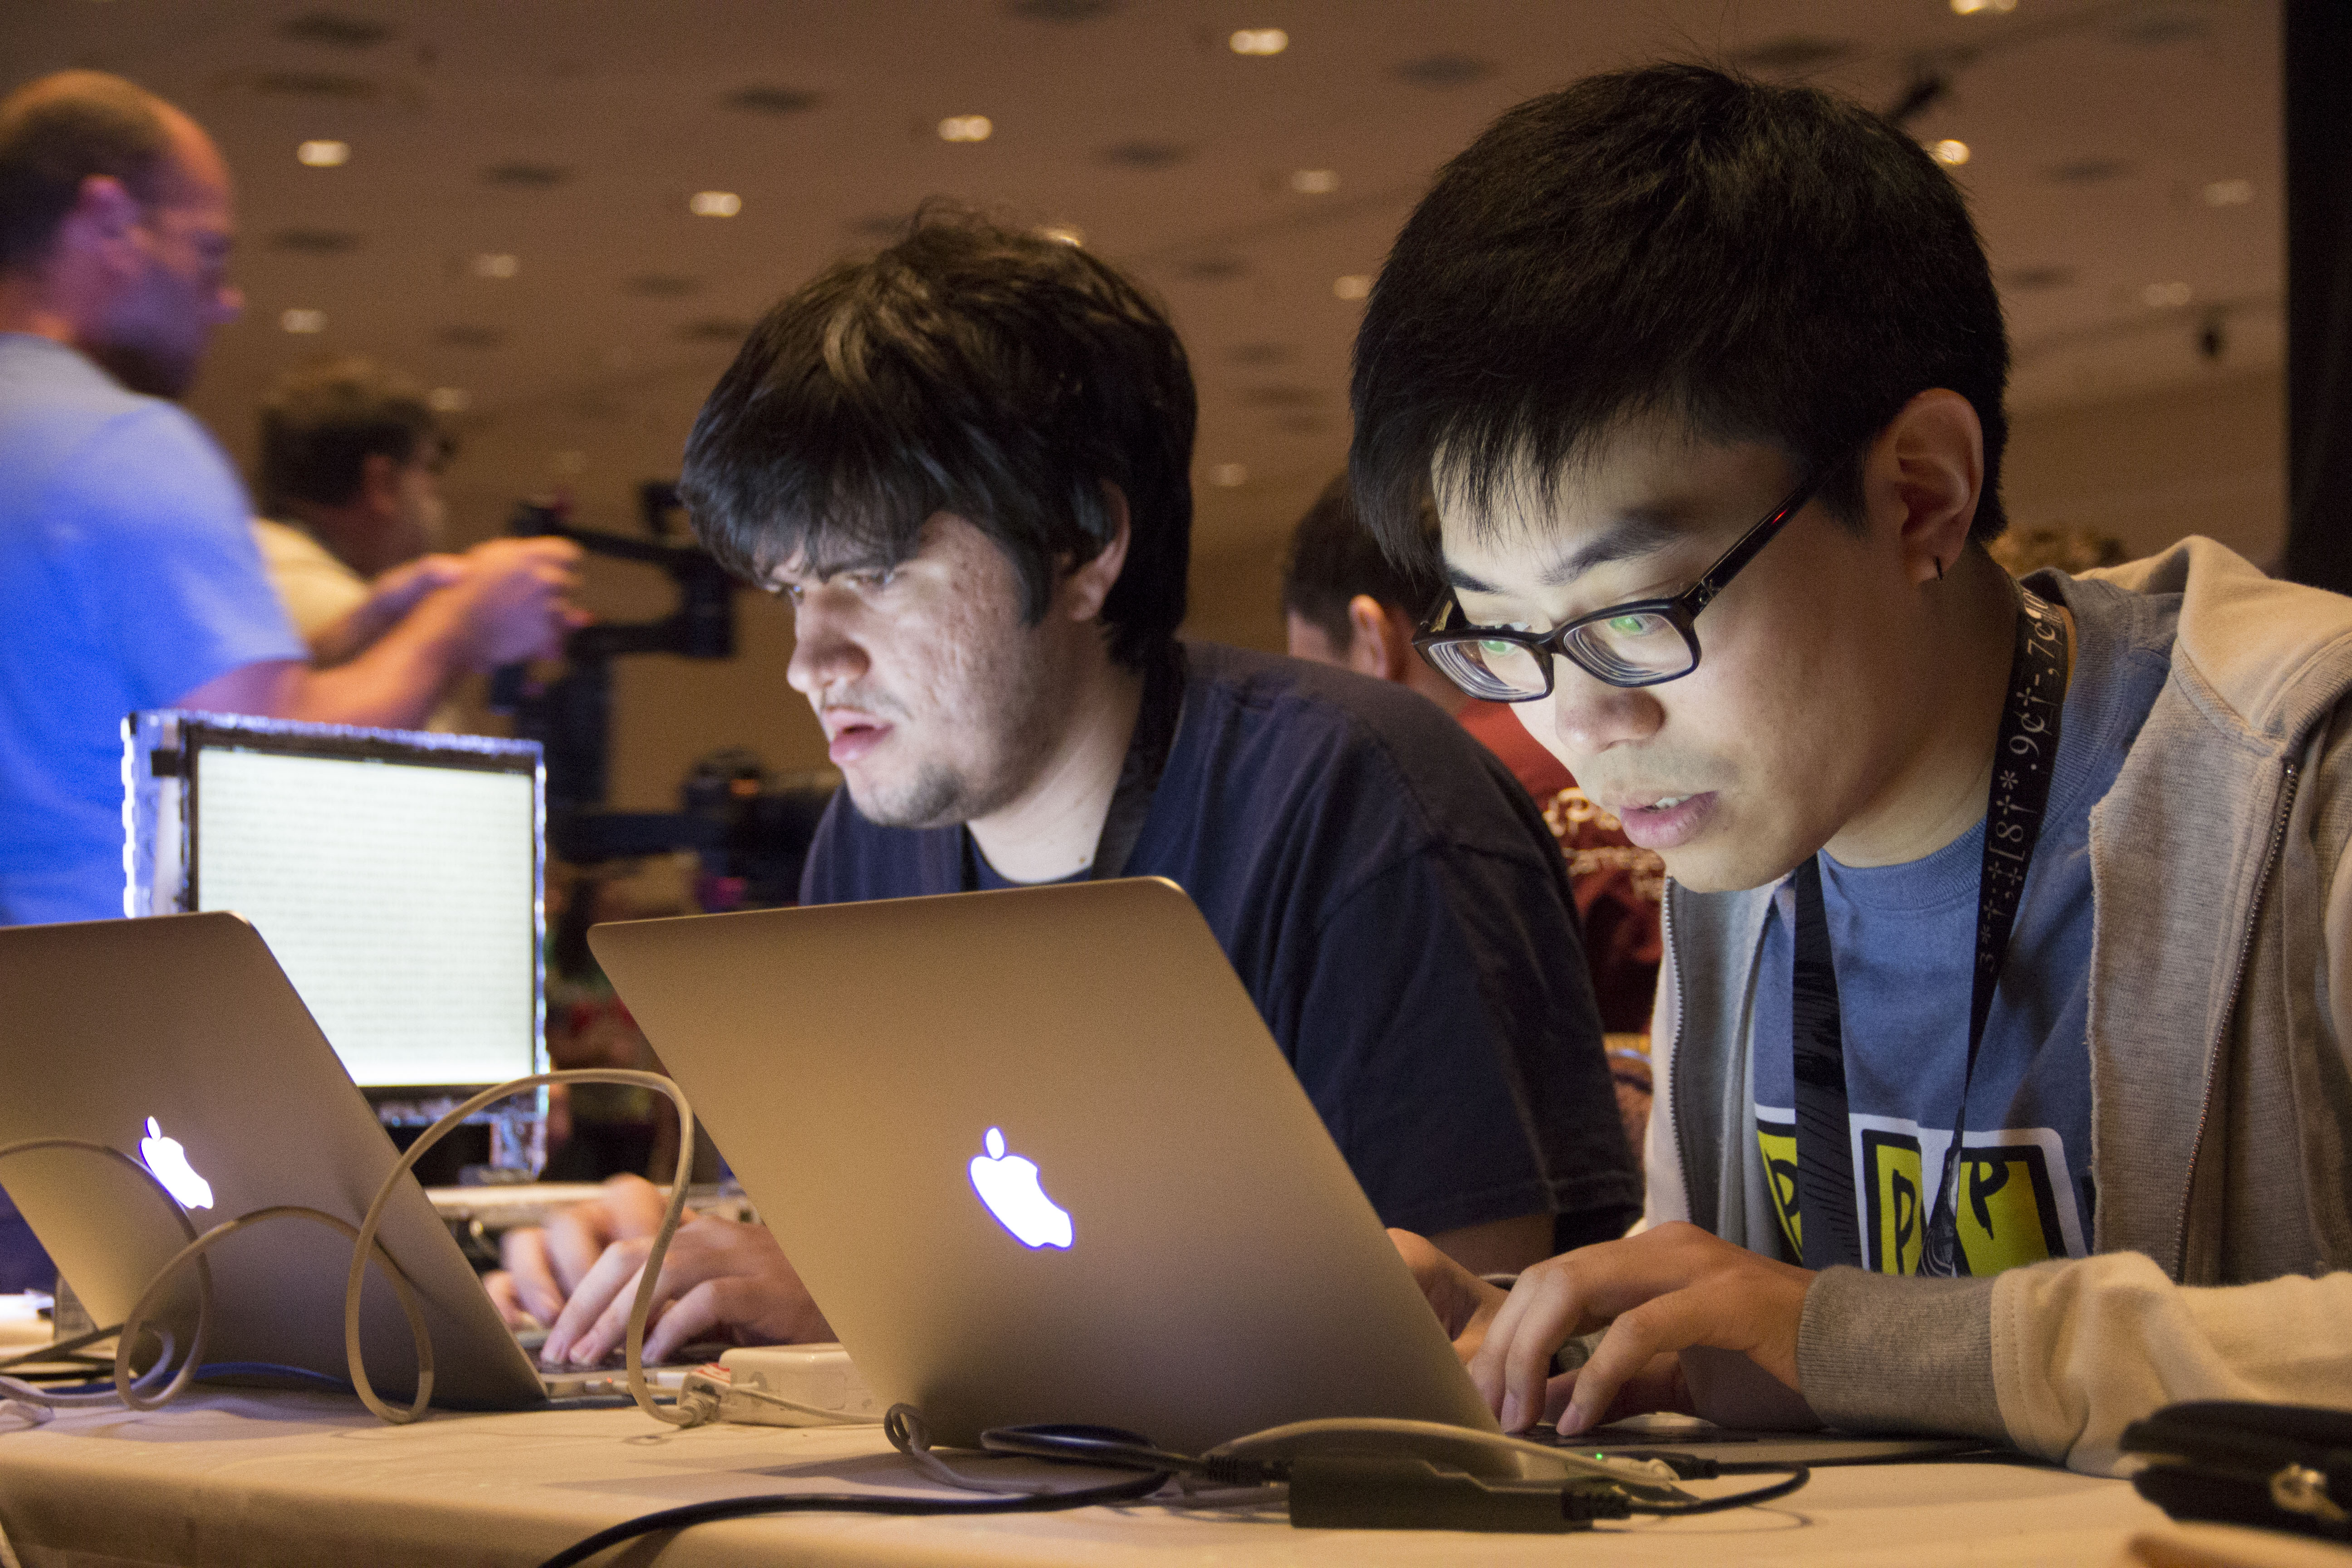 CMU's hacking team won its fourth title at the 2017 DefCon security conference.